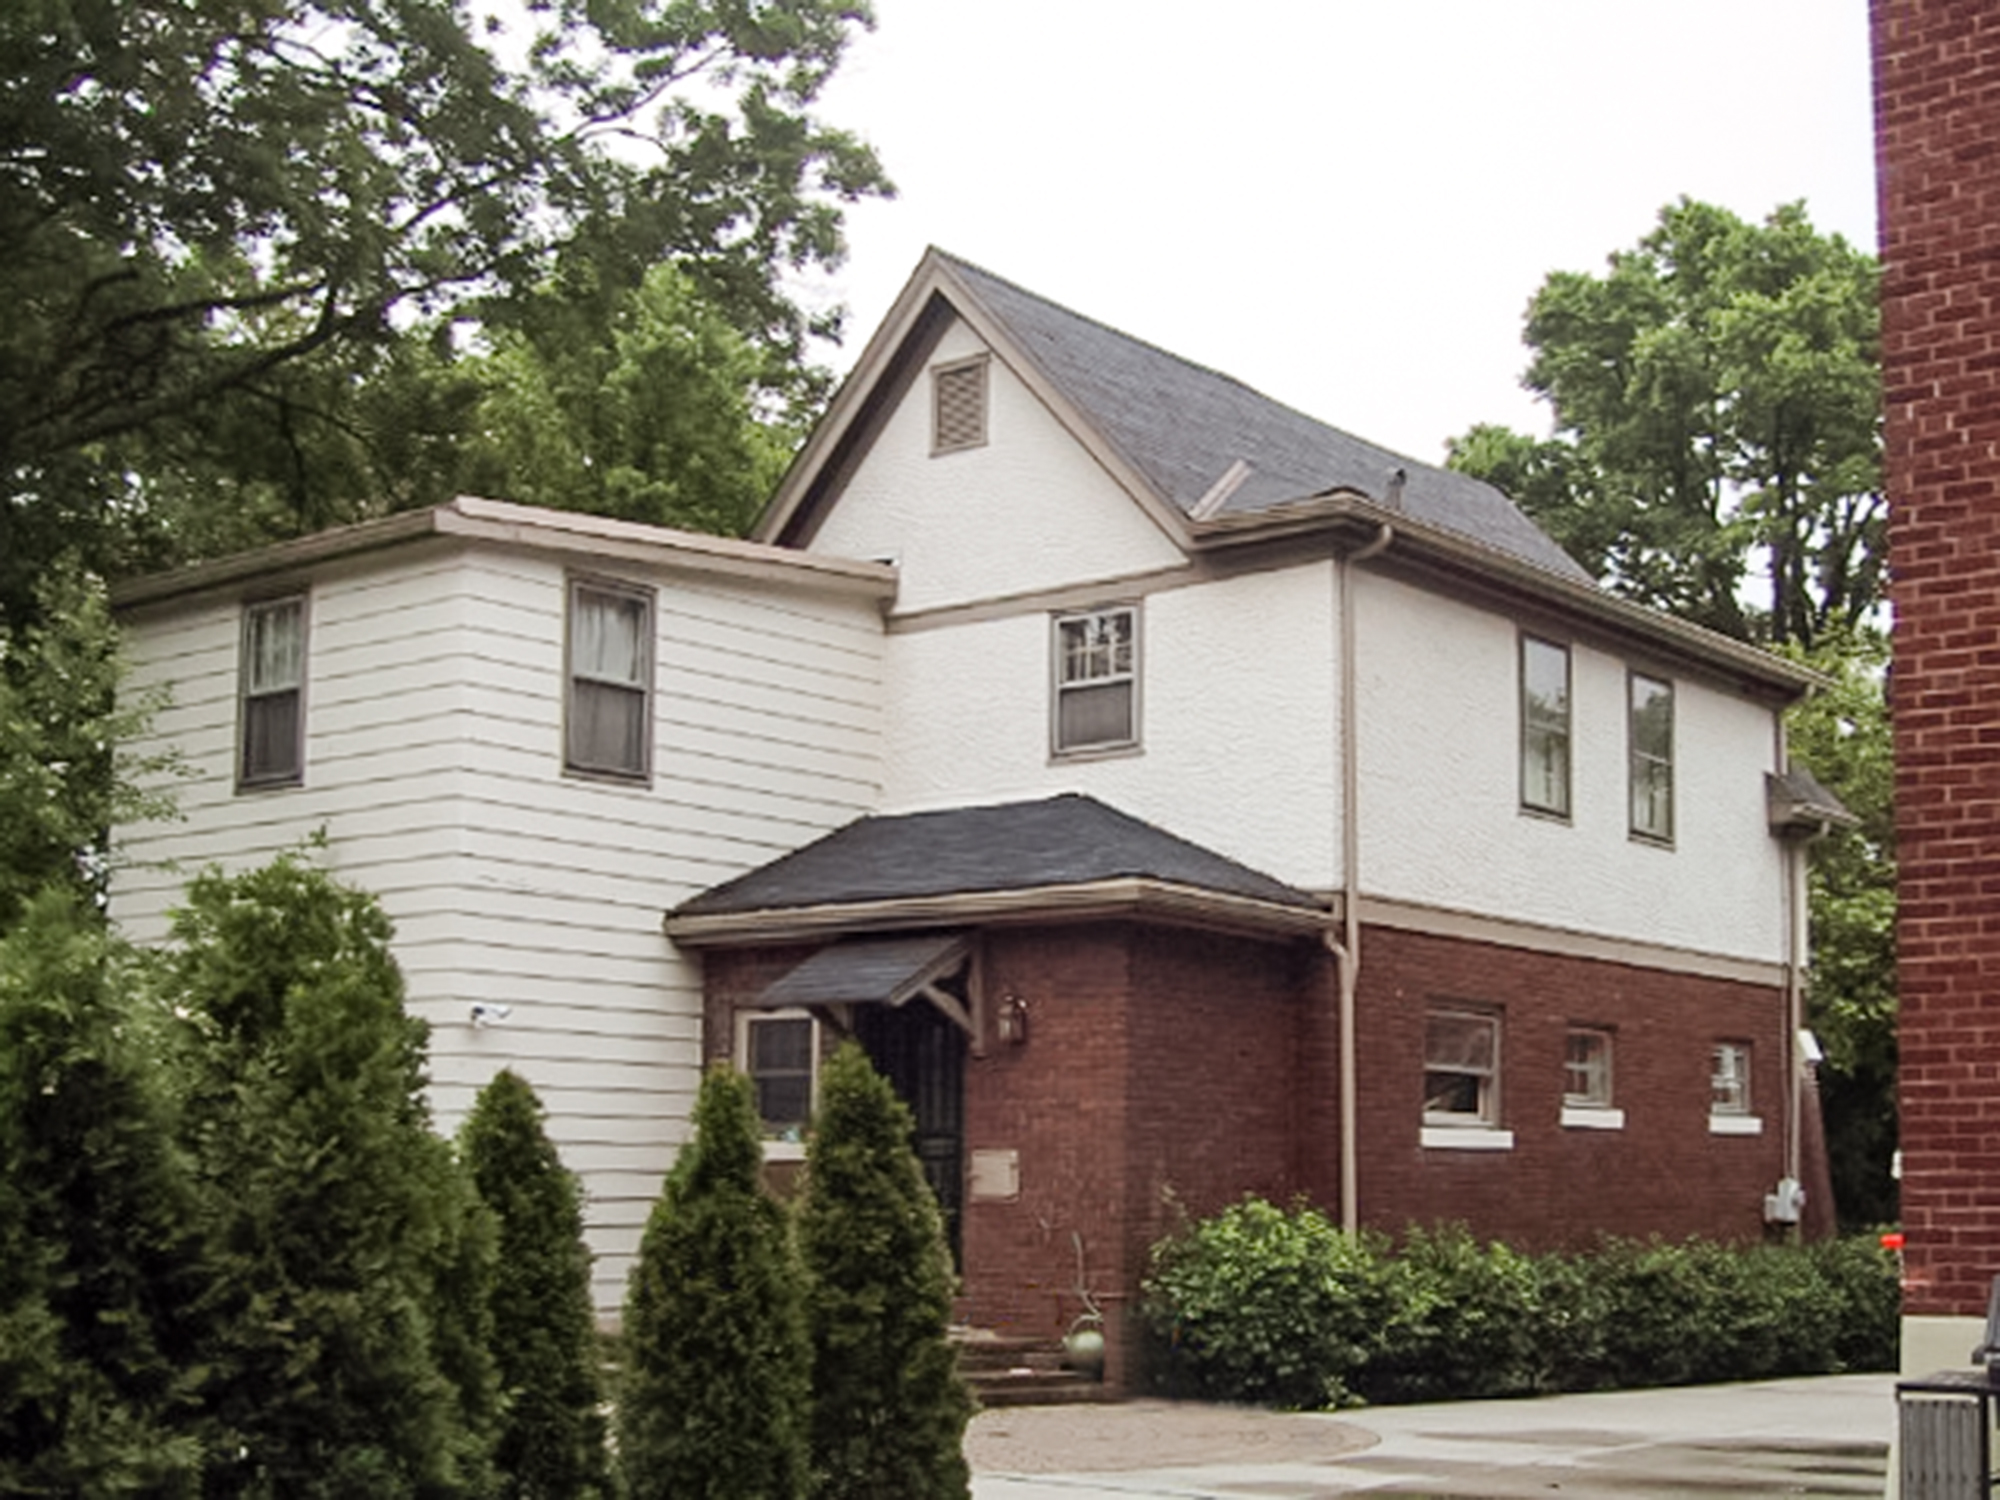 Hyde Park existing residential architecture